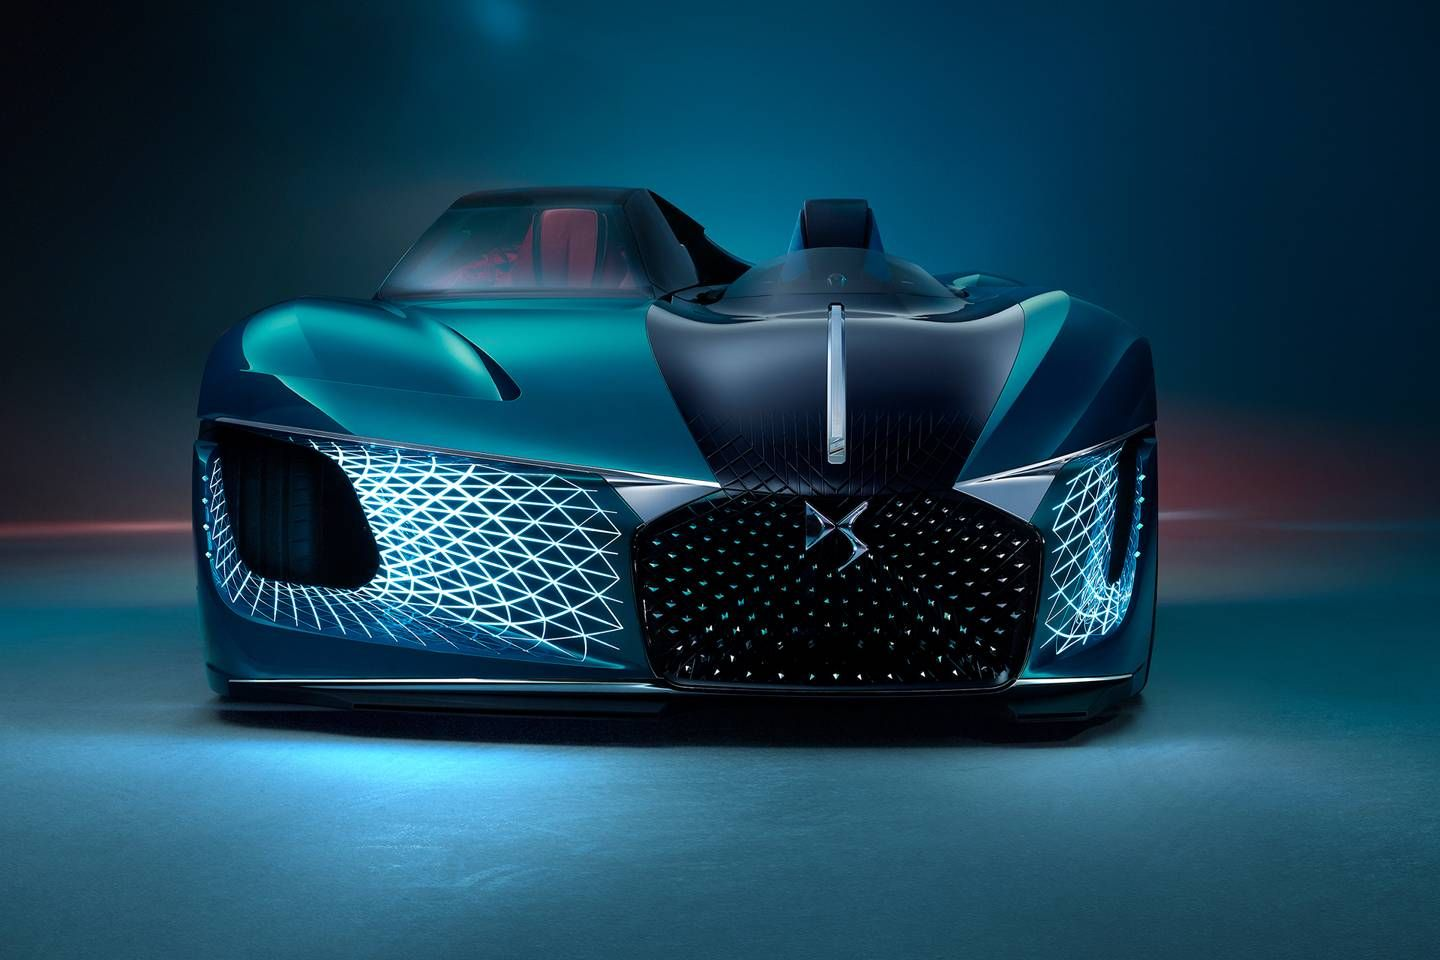 Ds X E Tense Concept Is Incroyable Concept Cars